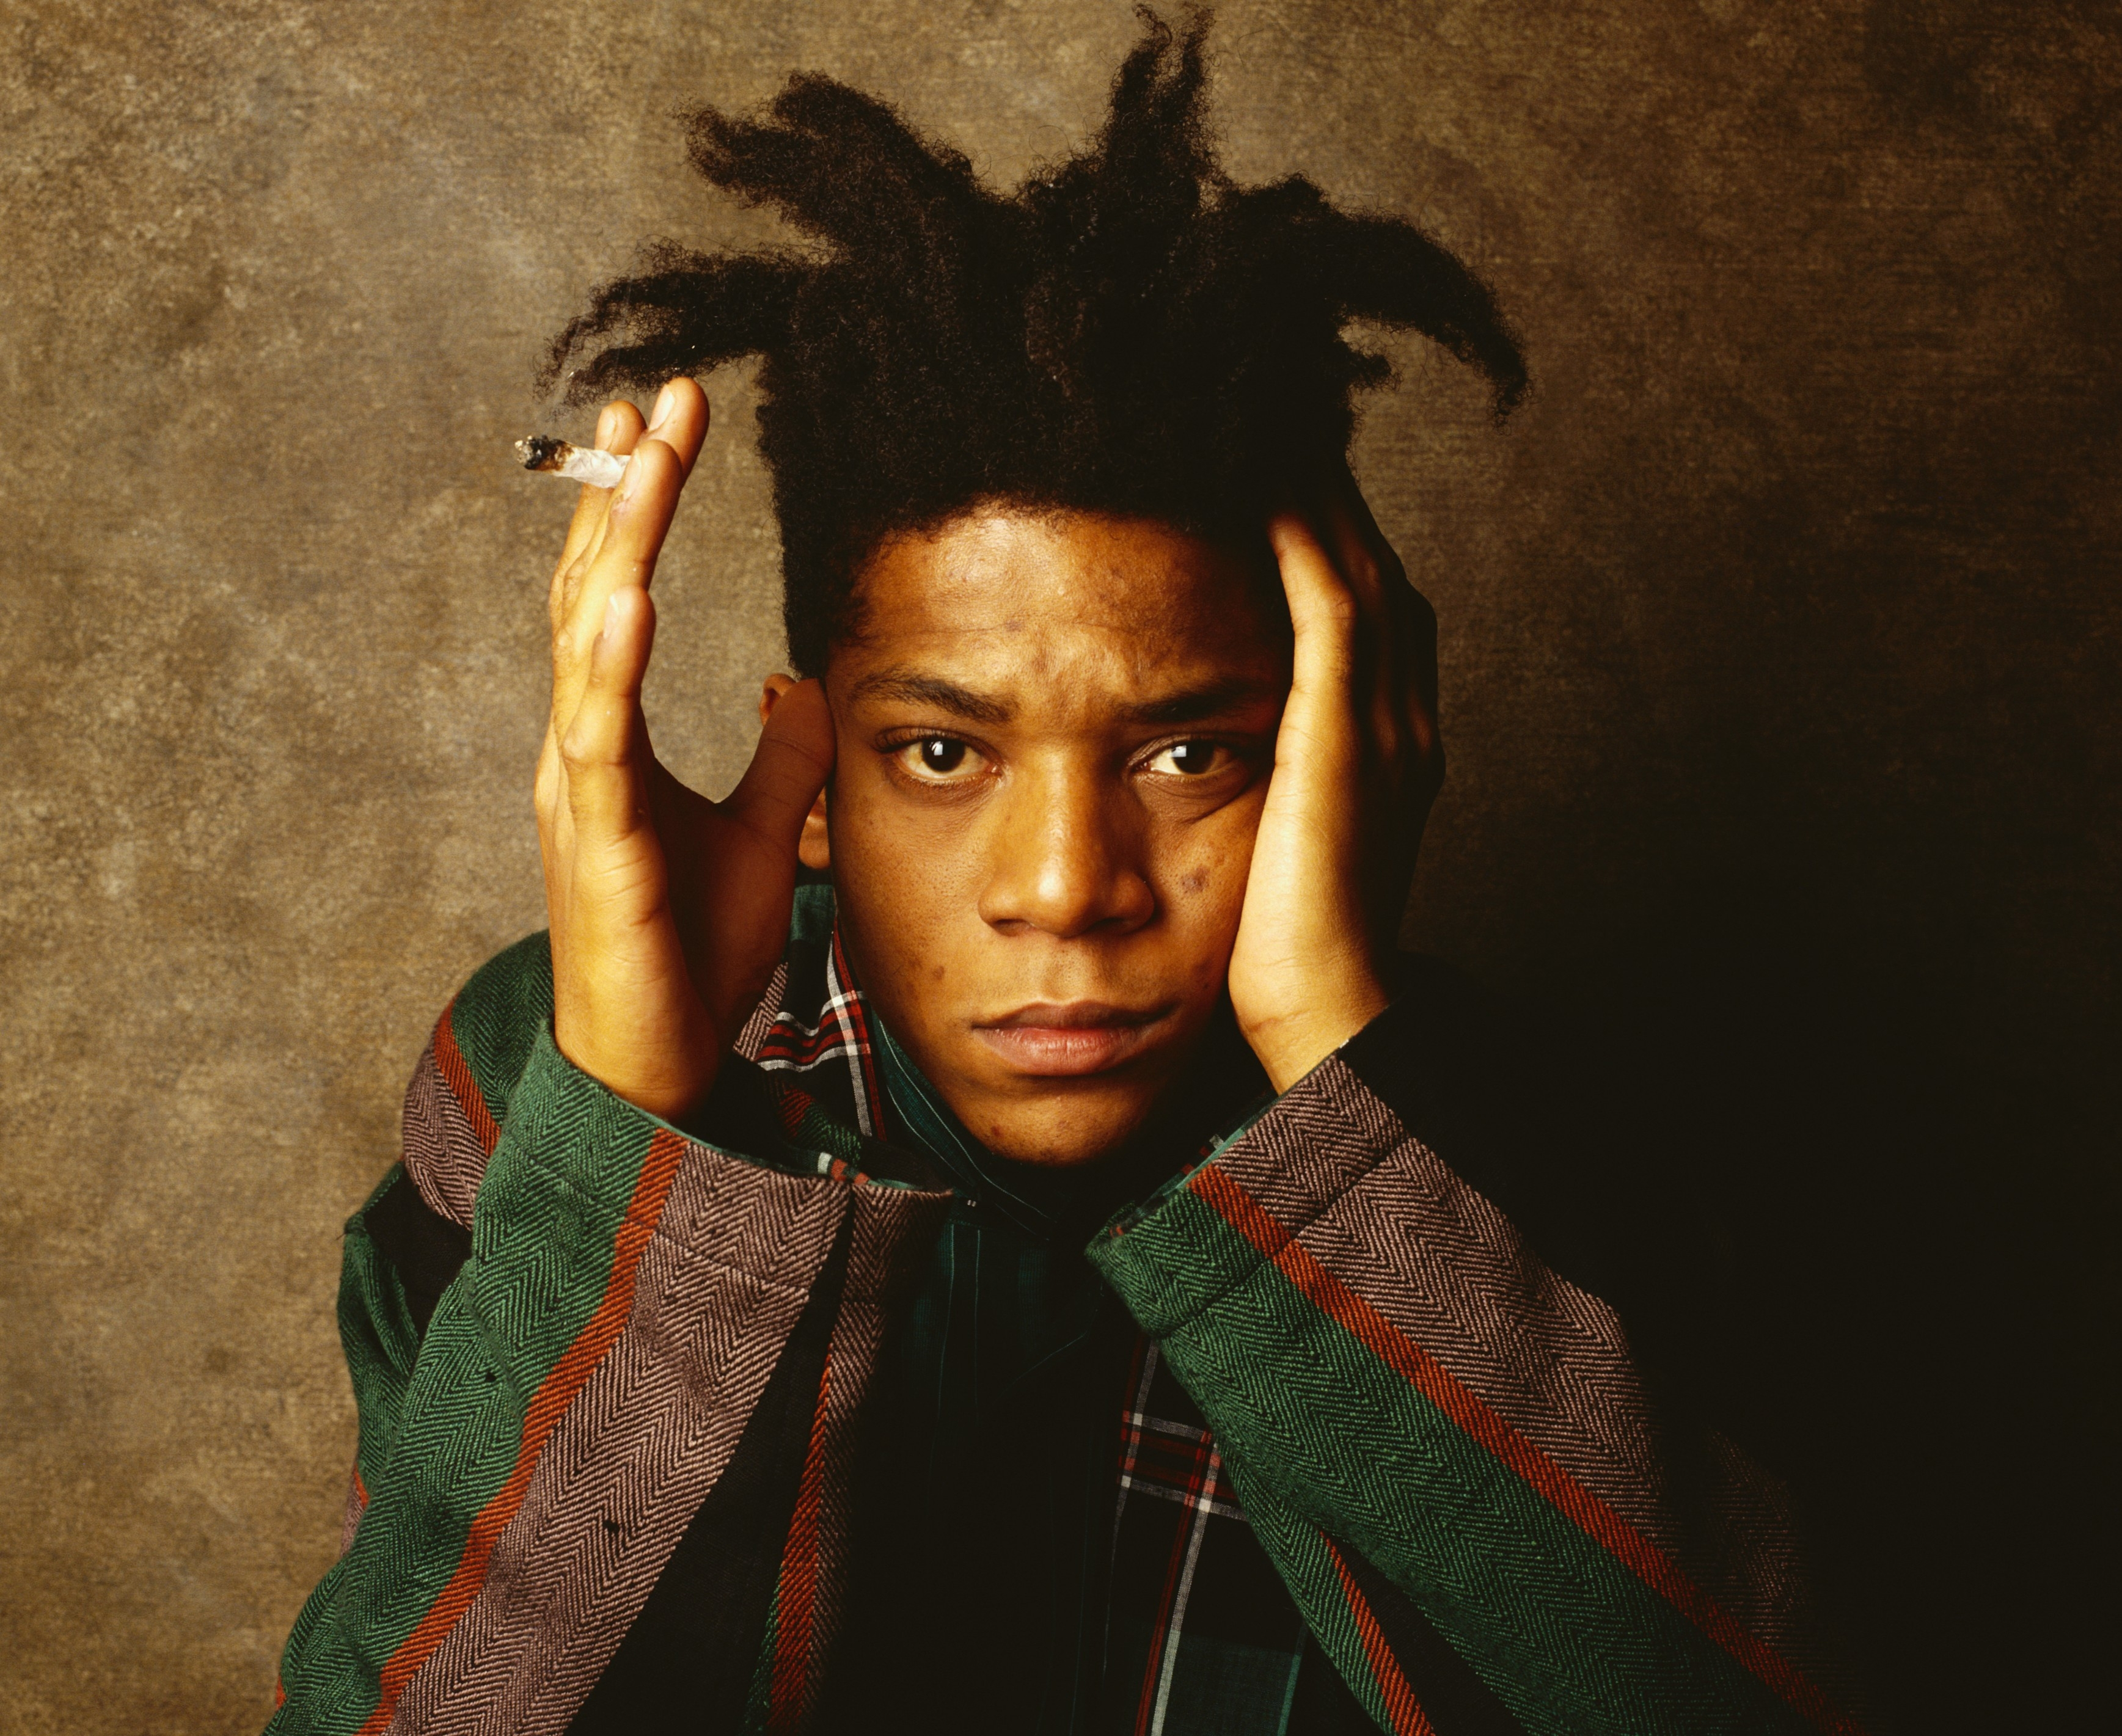 The story of SAMO©, Basquiat's first art project